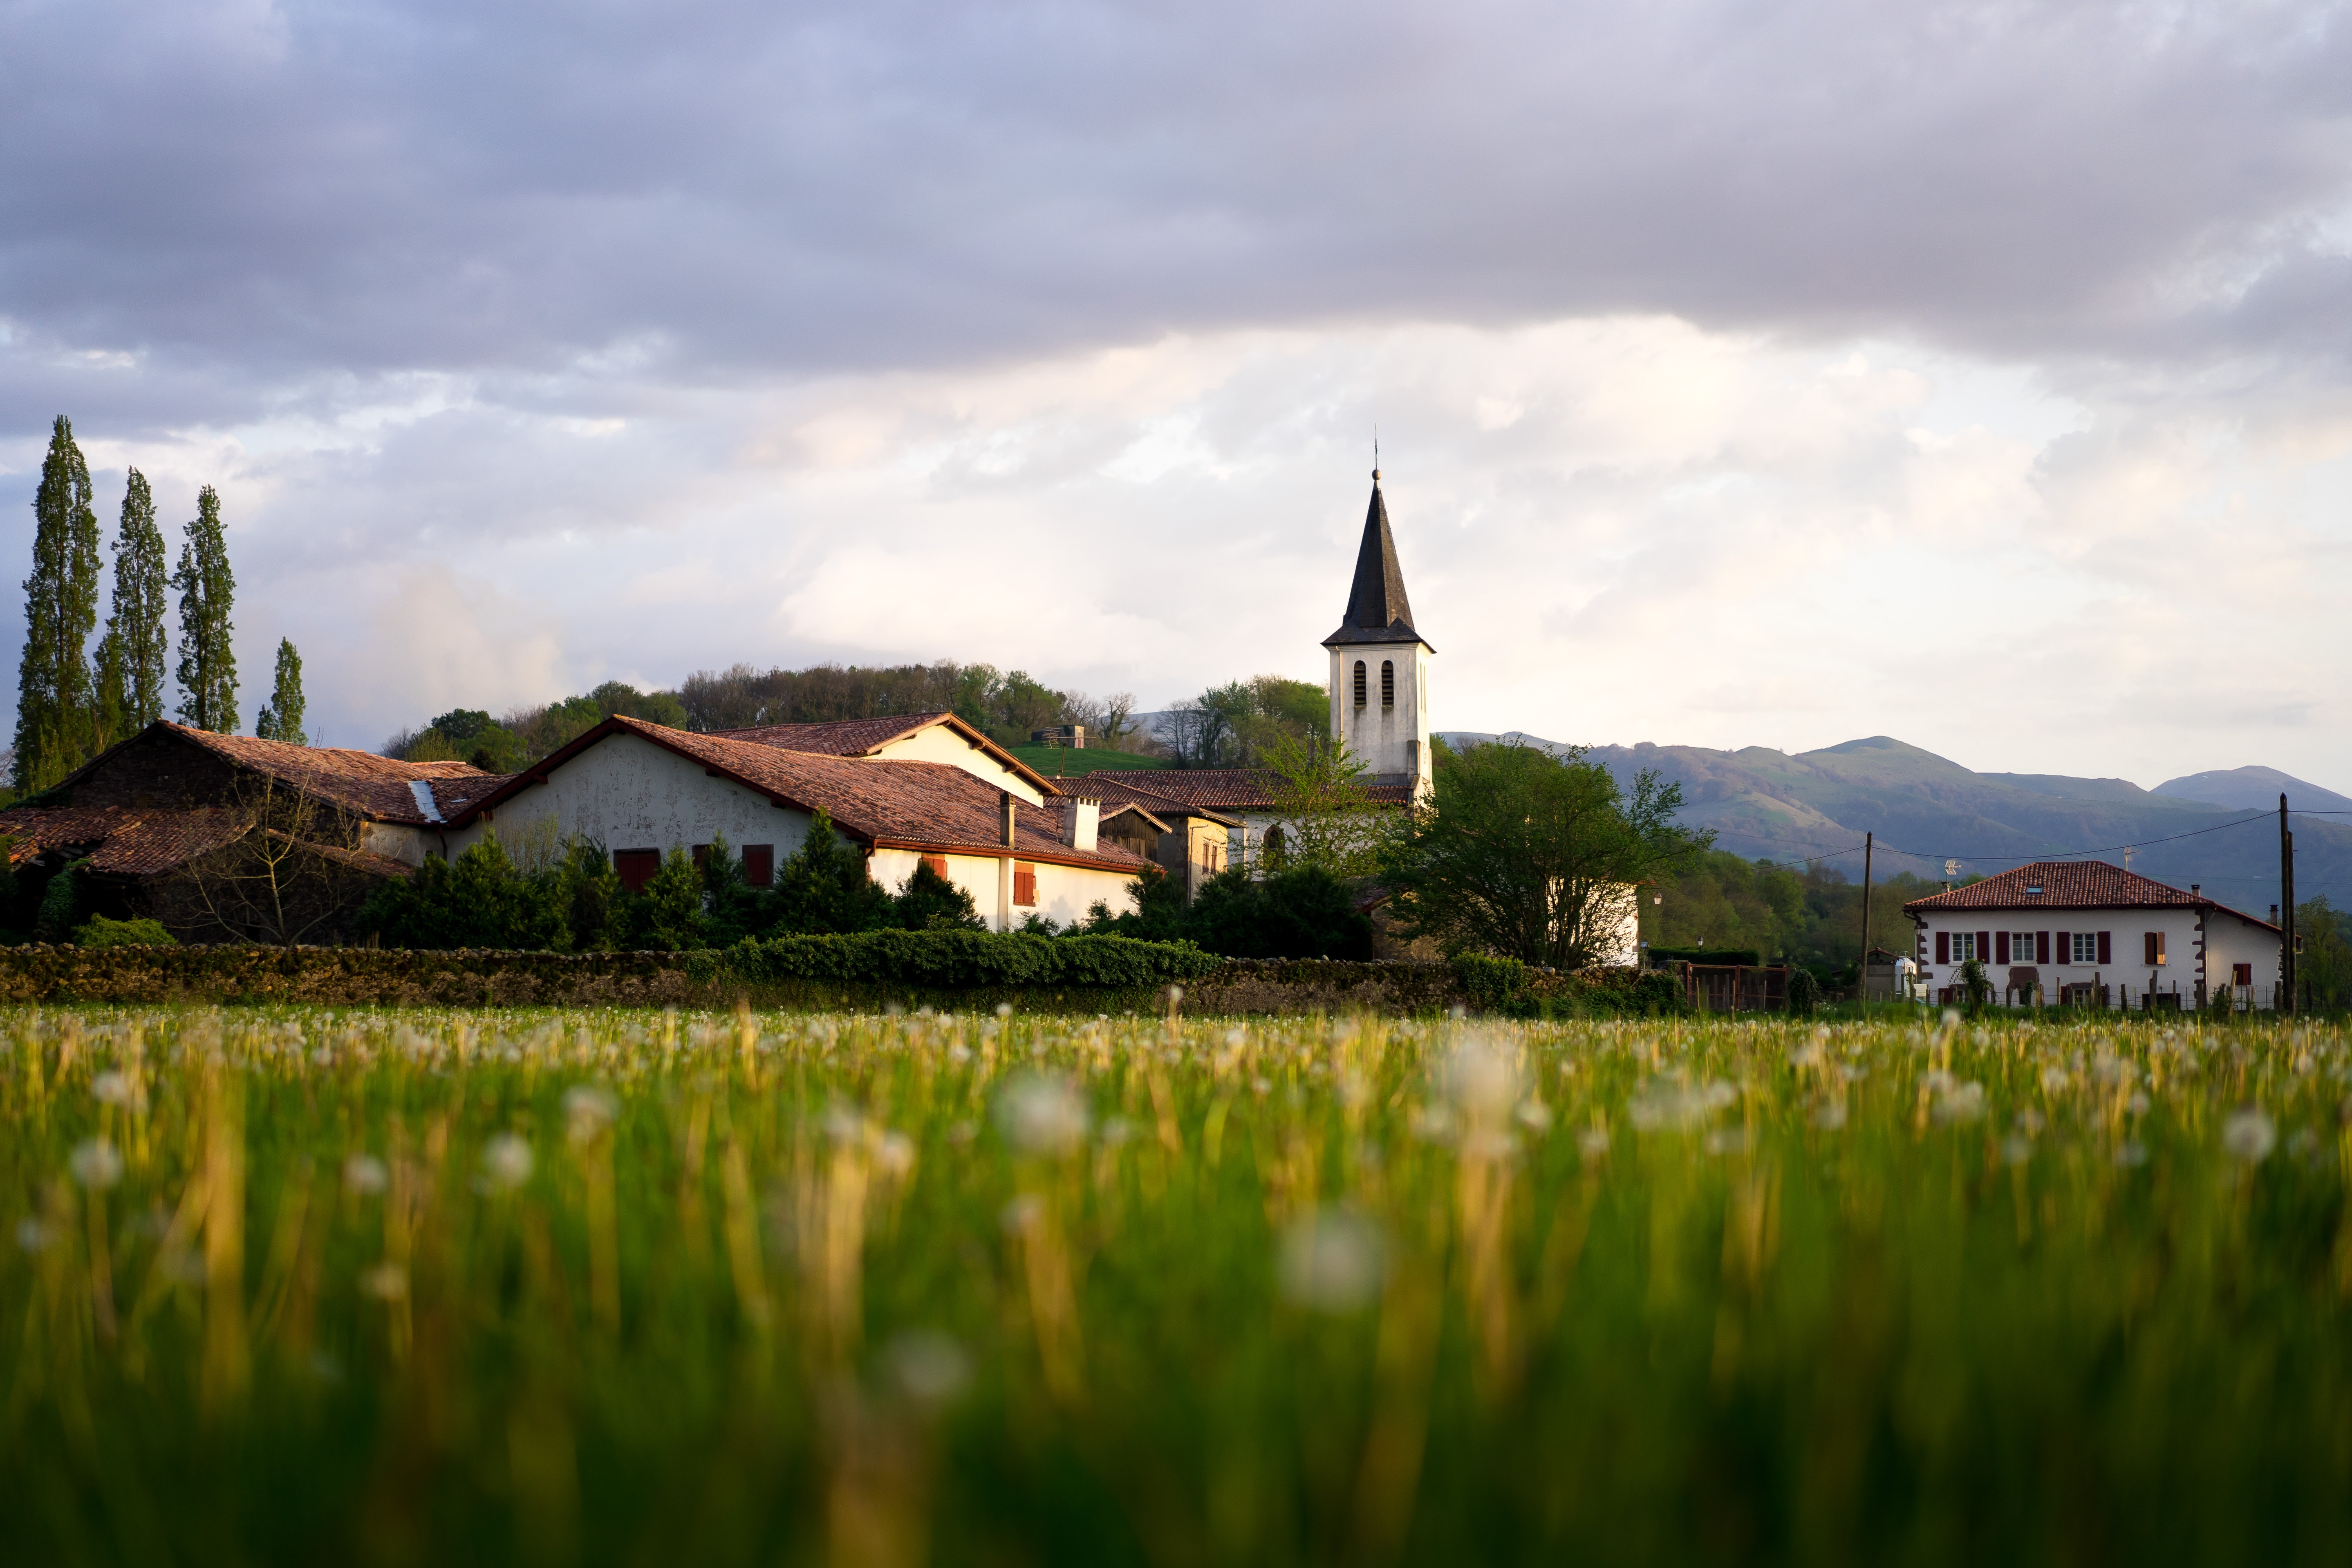 Countryside in France